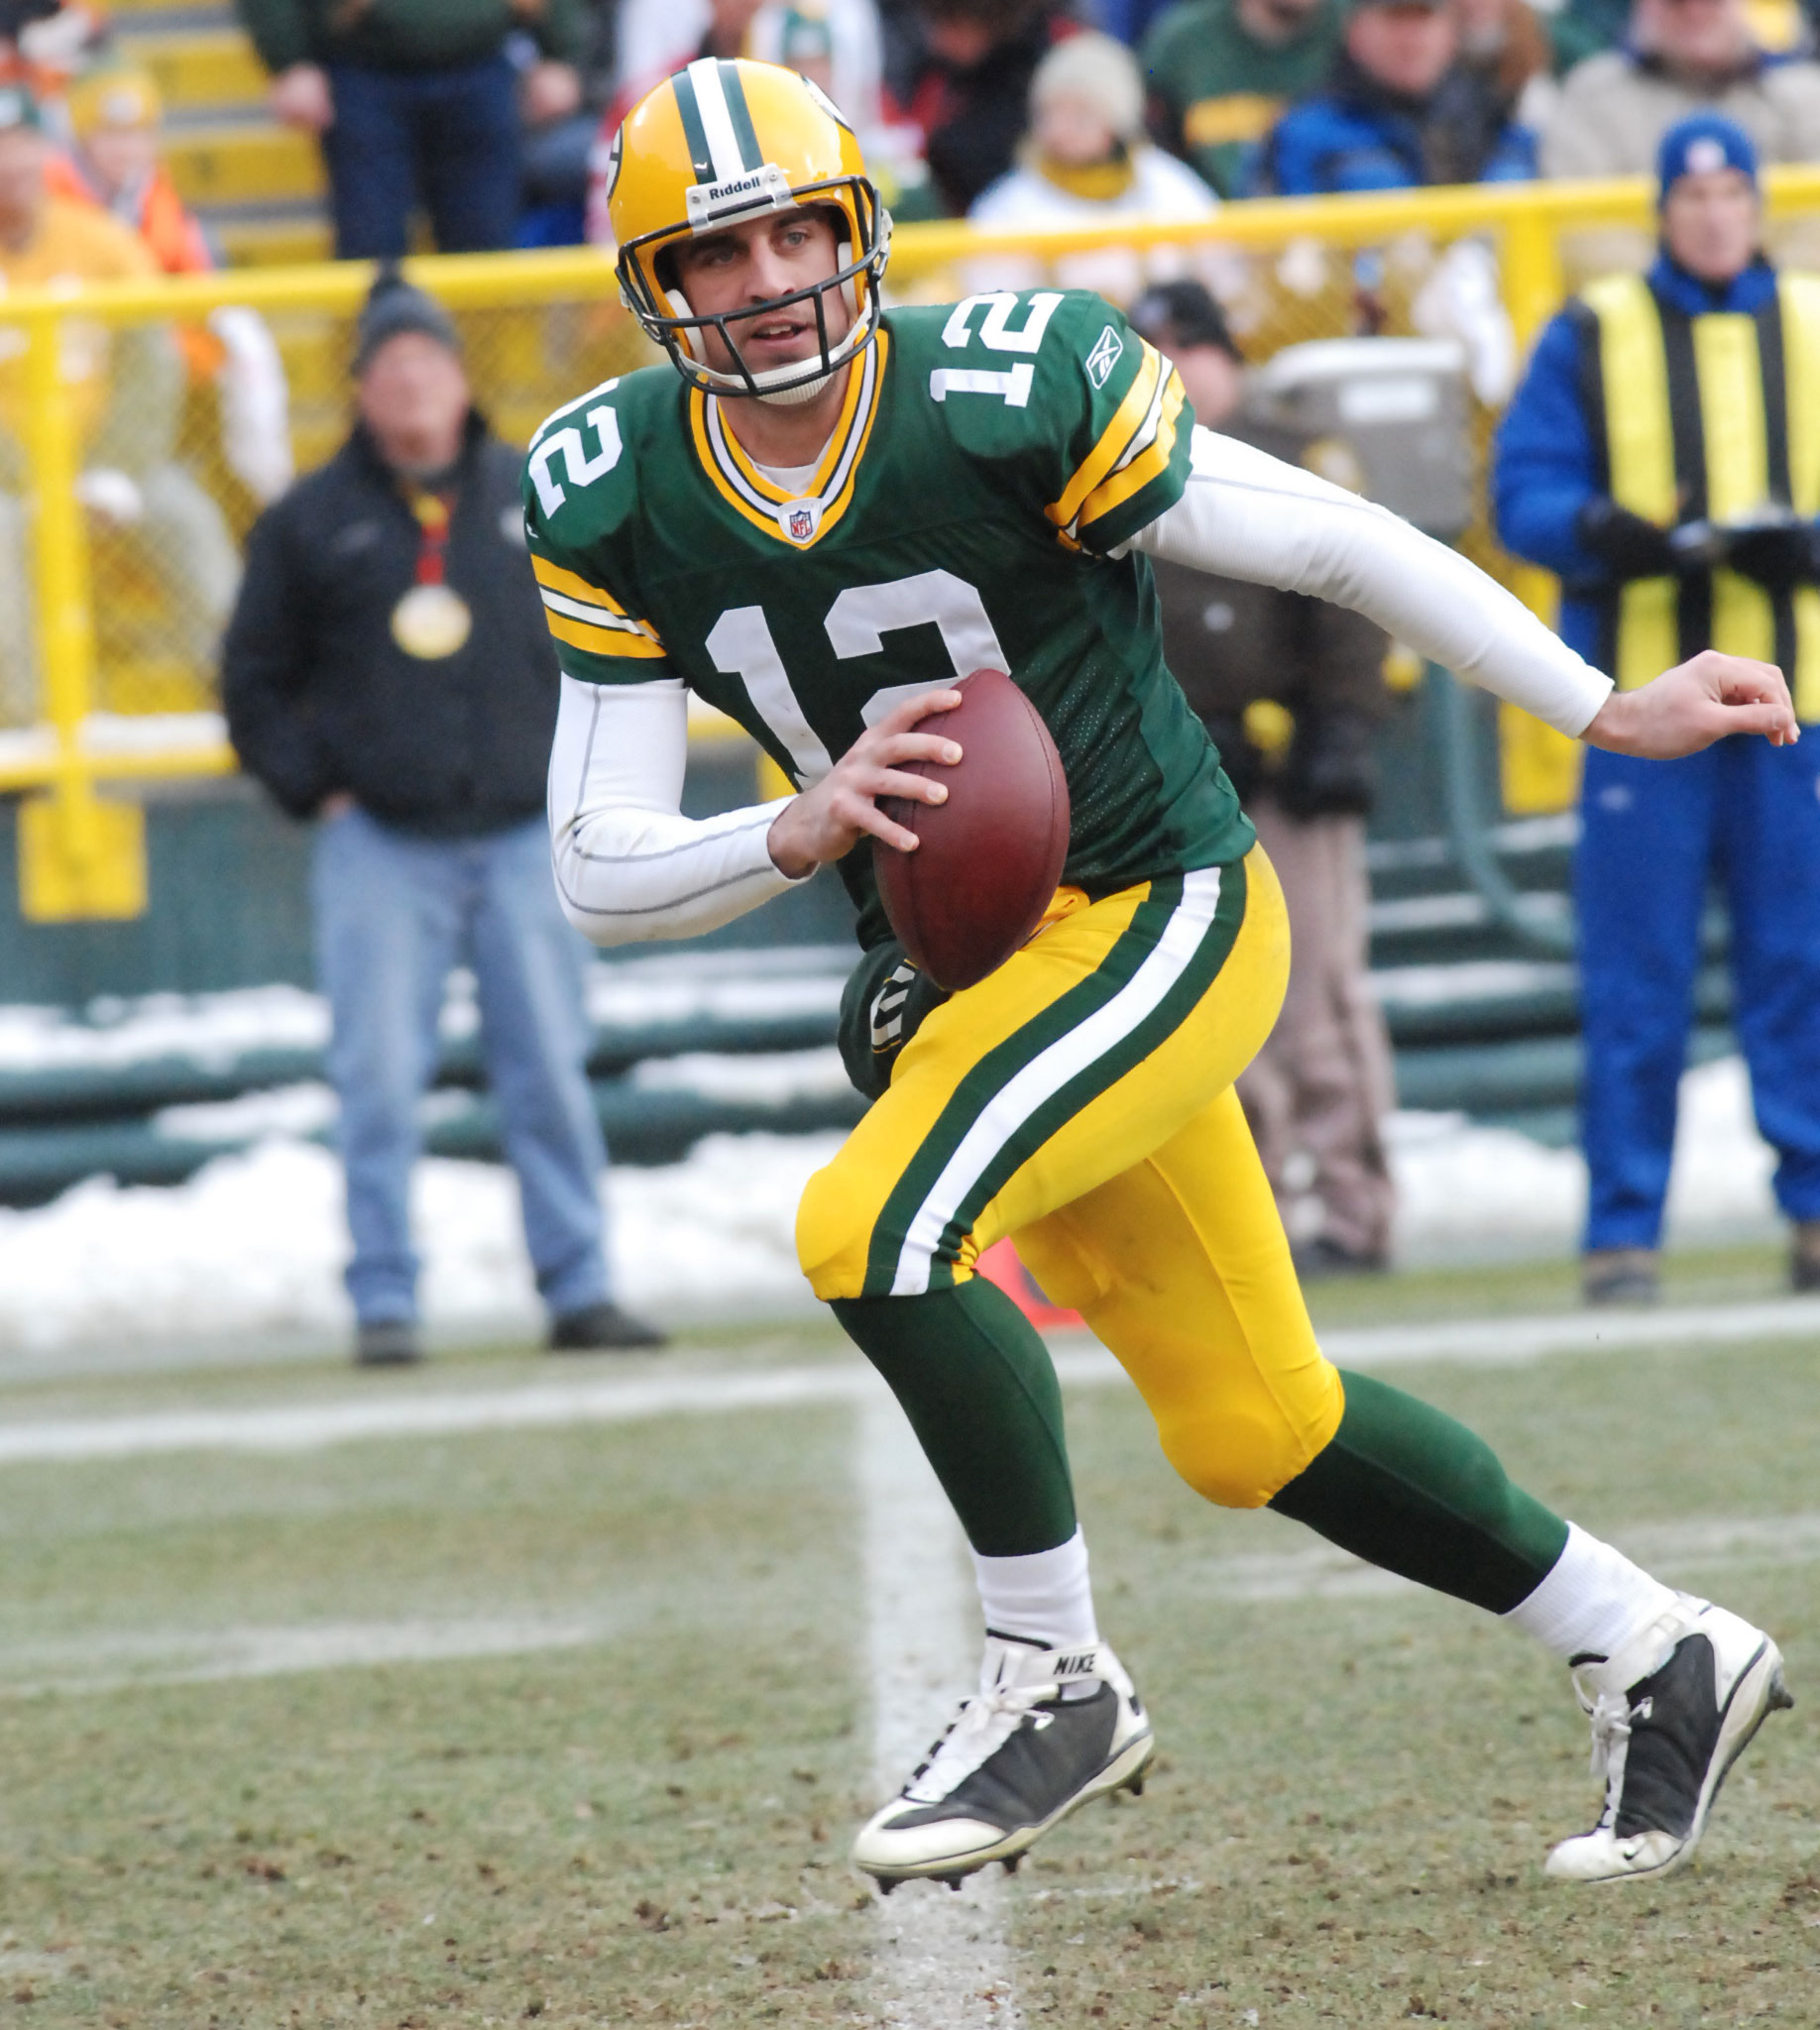 Wouldn't it be great to see Aaron Rodgers back on the field? We'll know more today. Raymond T. Rivard photograph